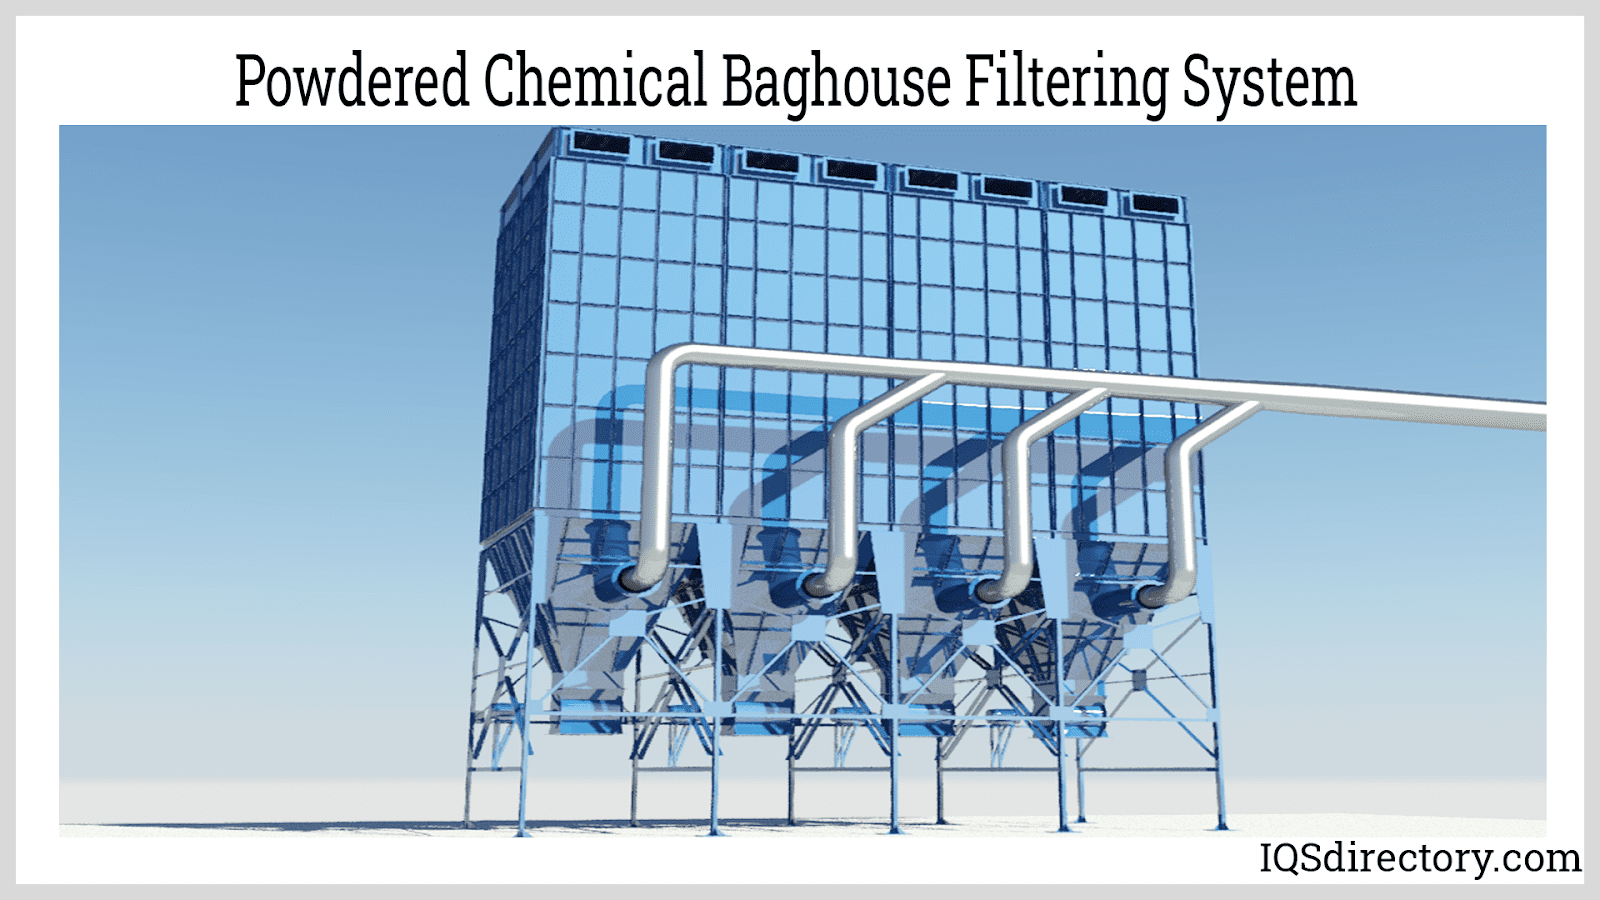 Powdered Chemical Baghouse Filtering System